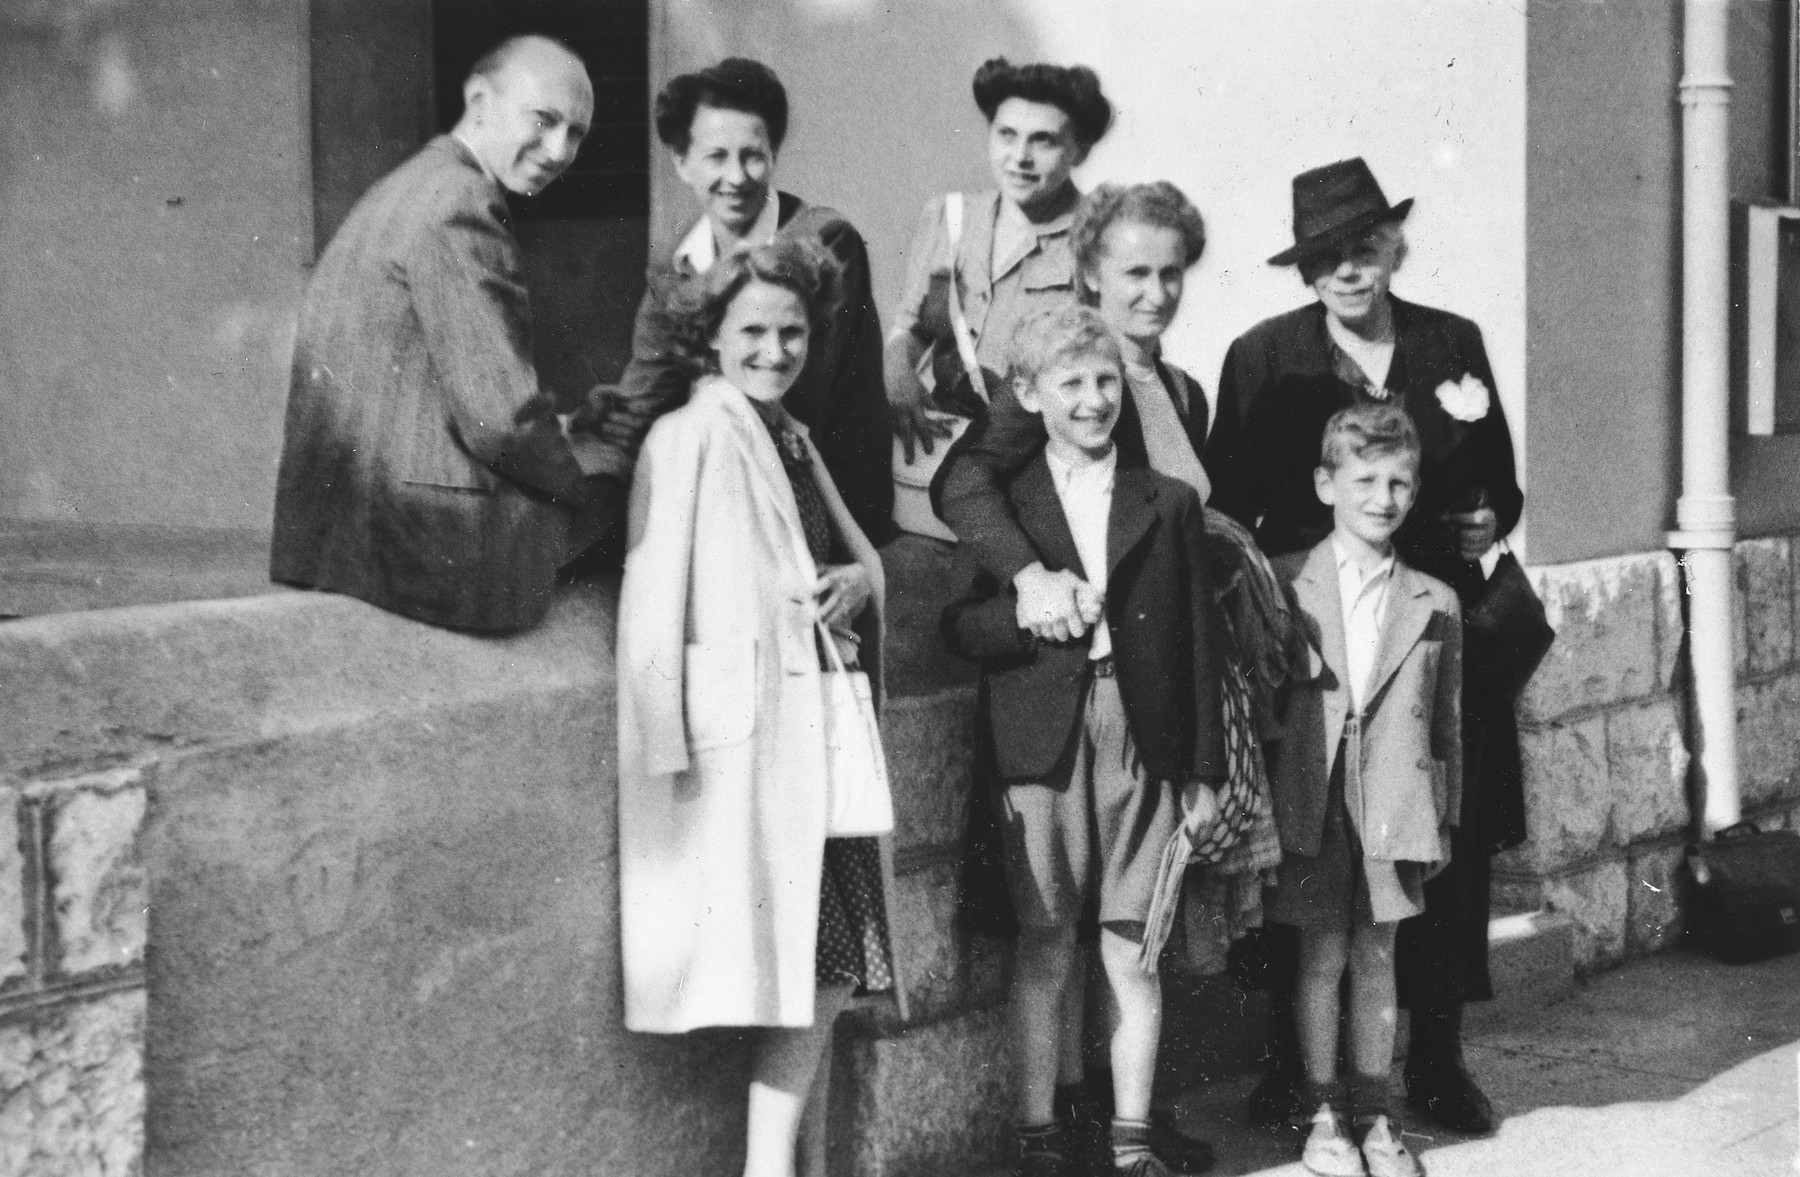 Group portrait of Jewish refugees outside a building in Geneva.  Among those pictured wife Ines Limot (second from right), her sons, Andre and Claude, and mother-in-law, Renate Hirsch (far right).